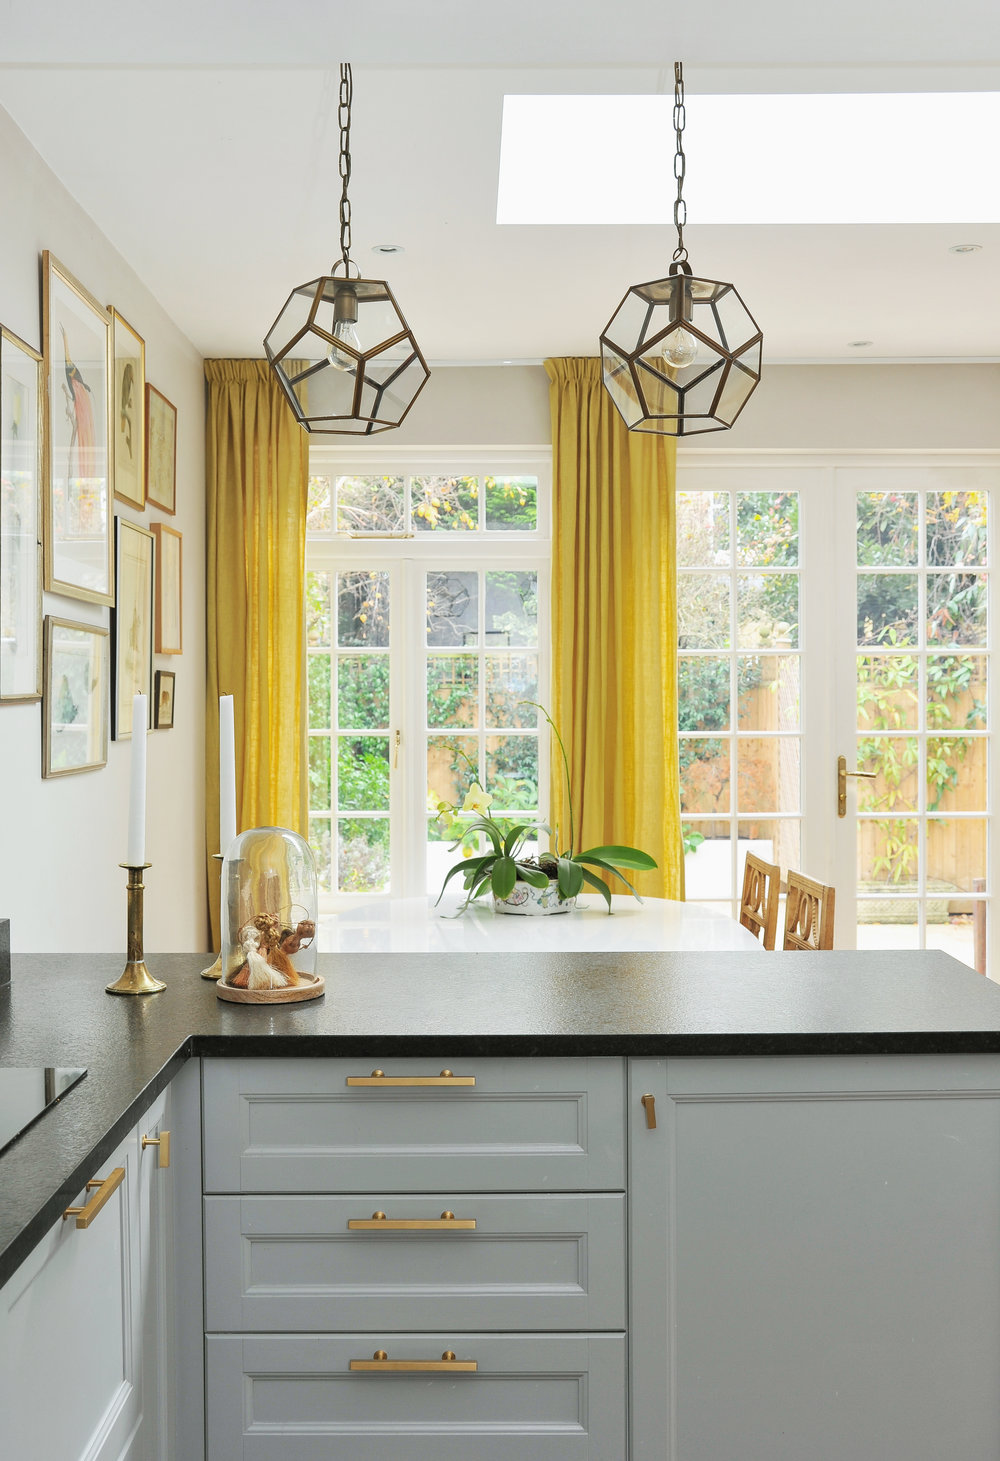 Anna von Waldburg interior design in Central London